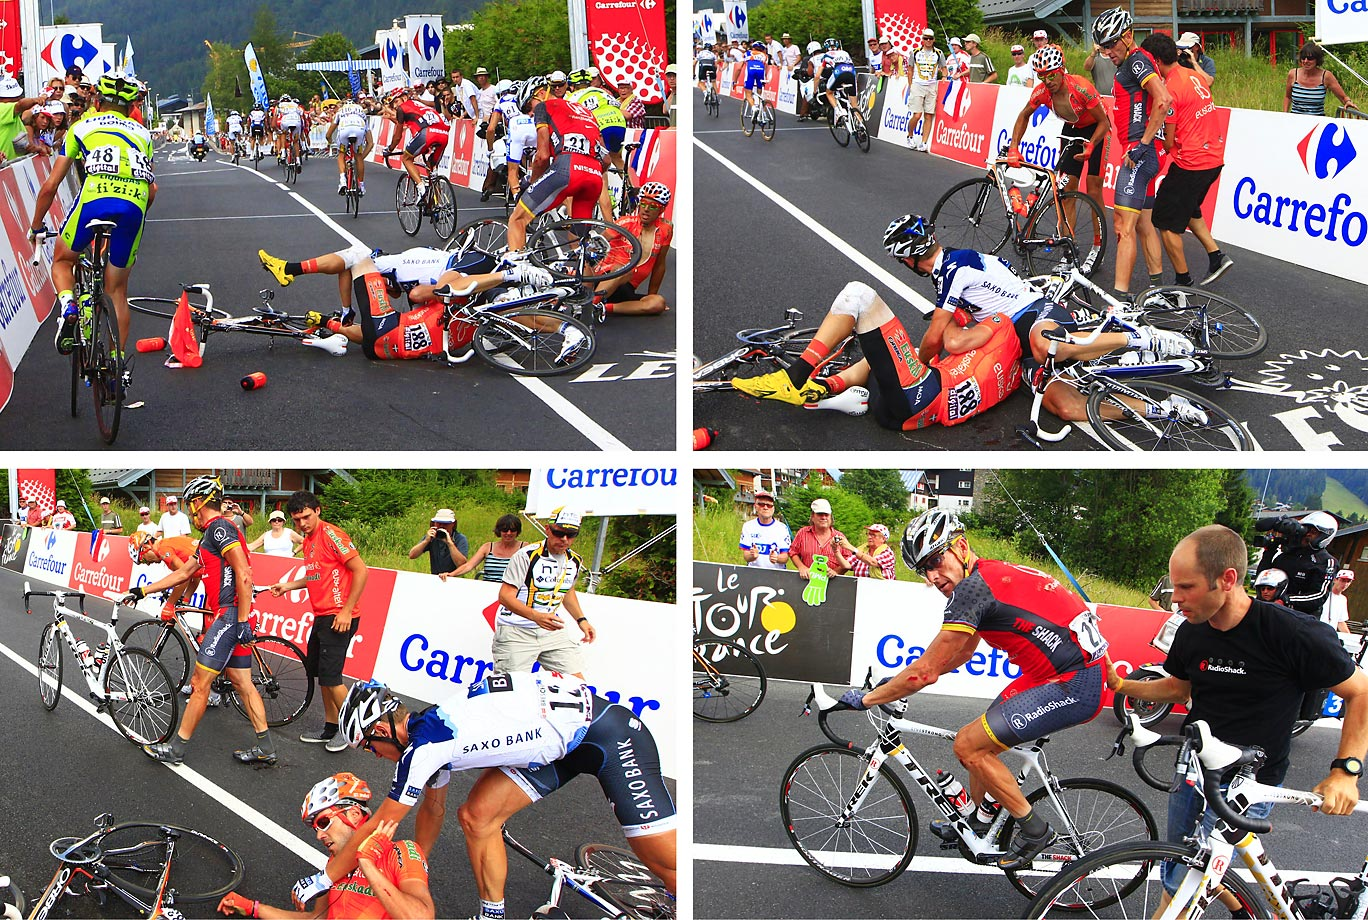 The sight was unusual, bordering on surreal. On the 2010 Tour's first day in high mountains, seven-time winner, erstwhile patron Lance Armstrong was suddenly unable to stay upright. The Texan crashed three times, then was dropped by his rivals on the final climb, finishing 12 minutes behind them. Literally and figuratively bloodied, his Tour was effectively over.